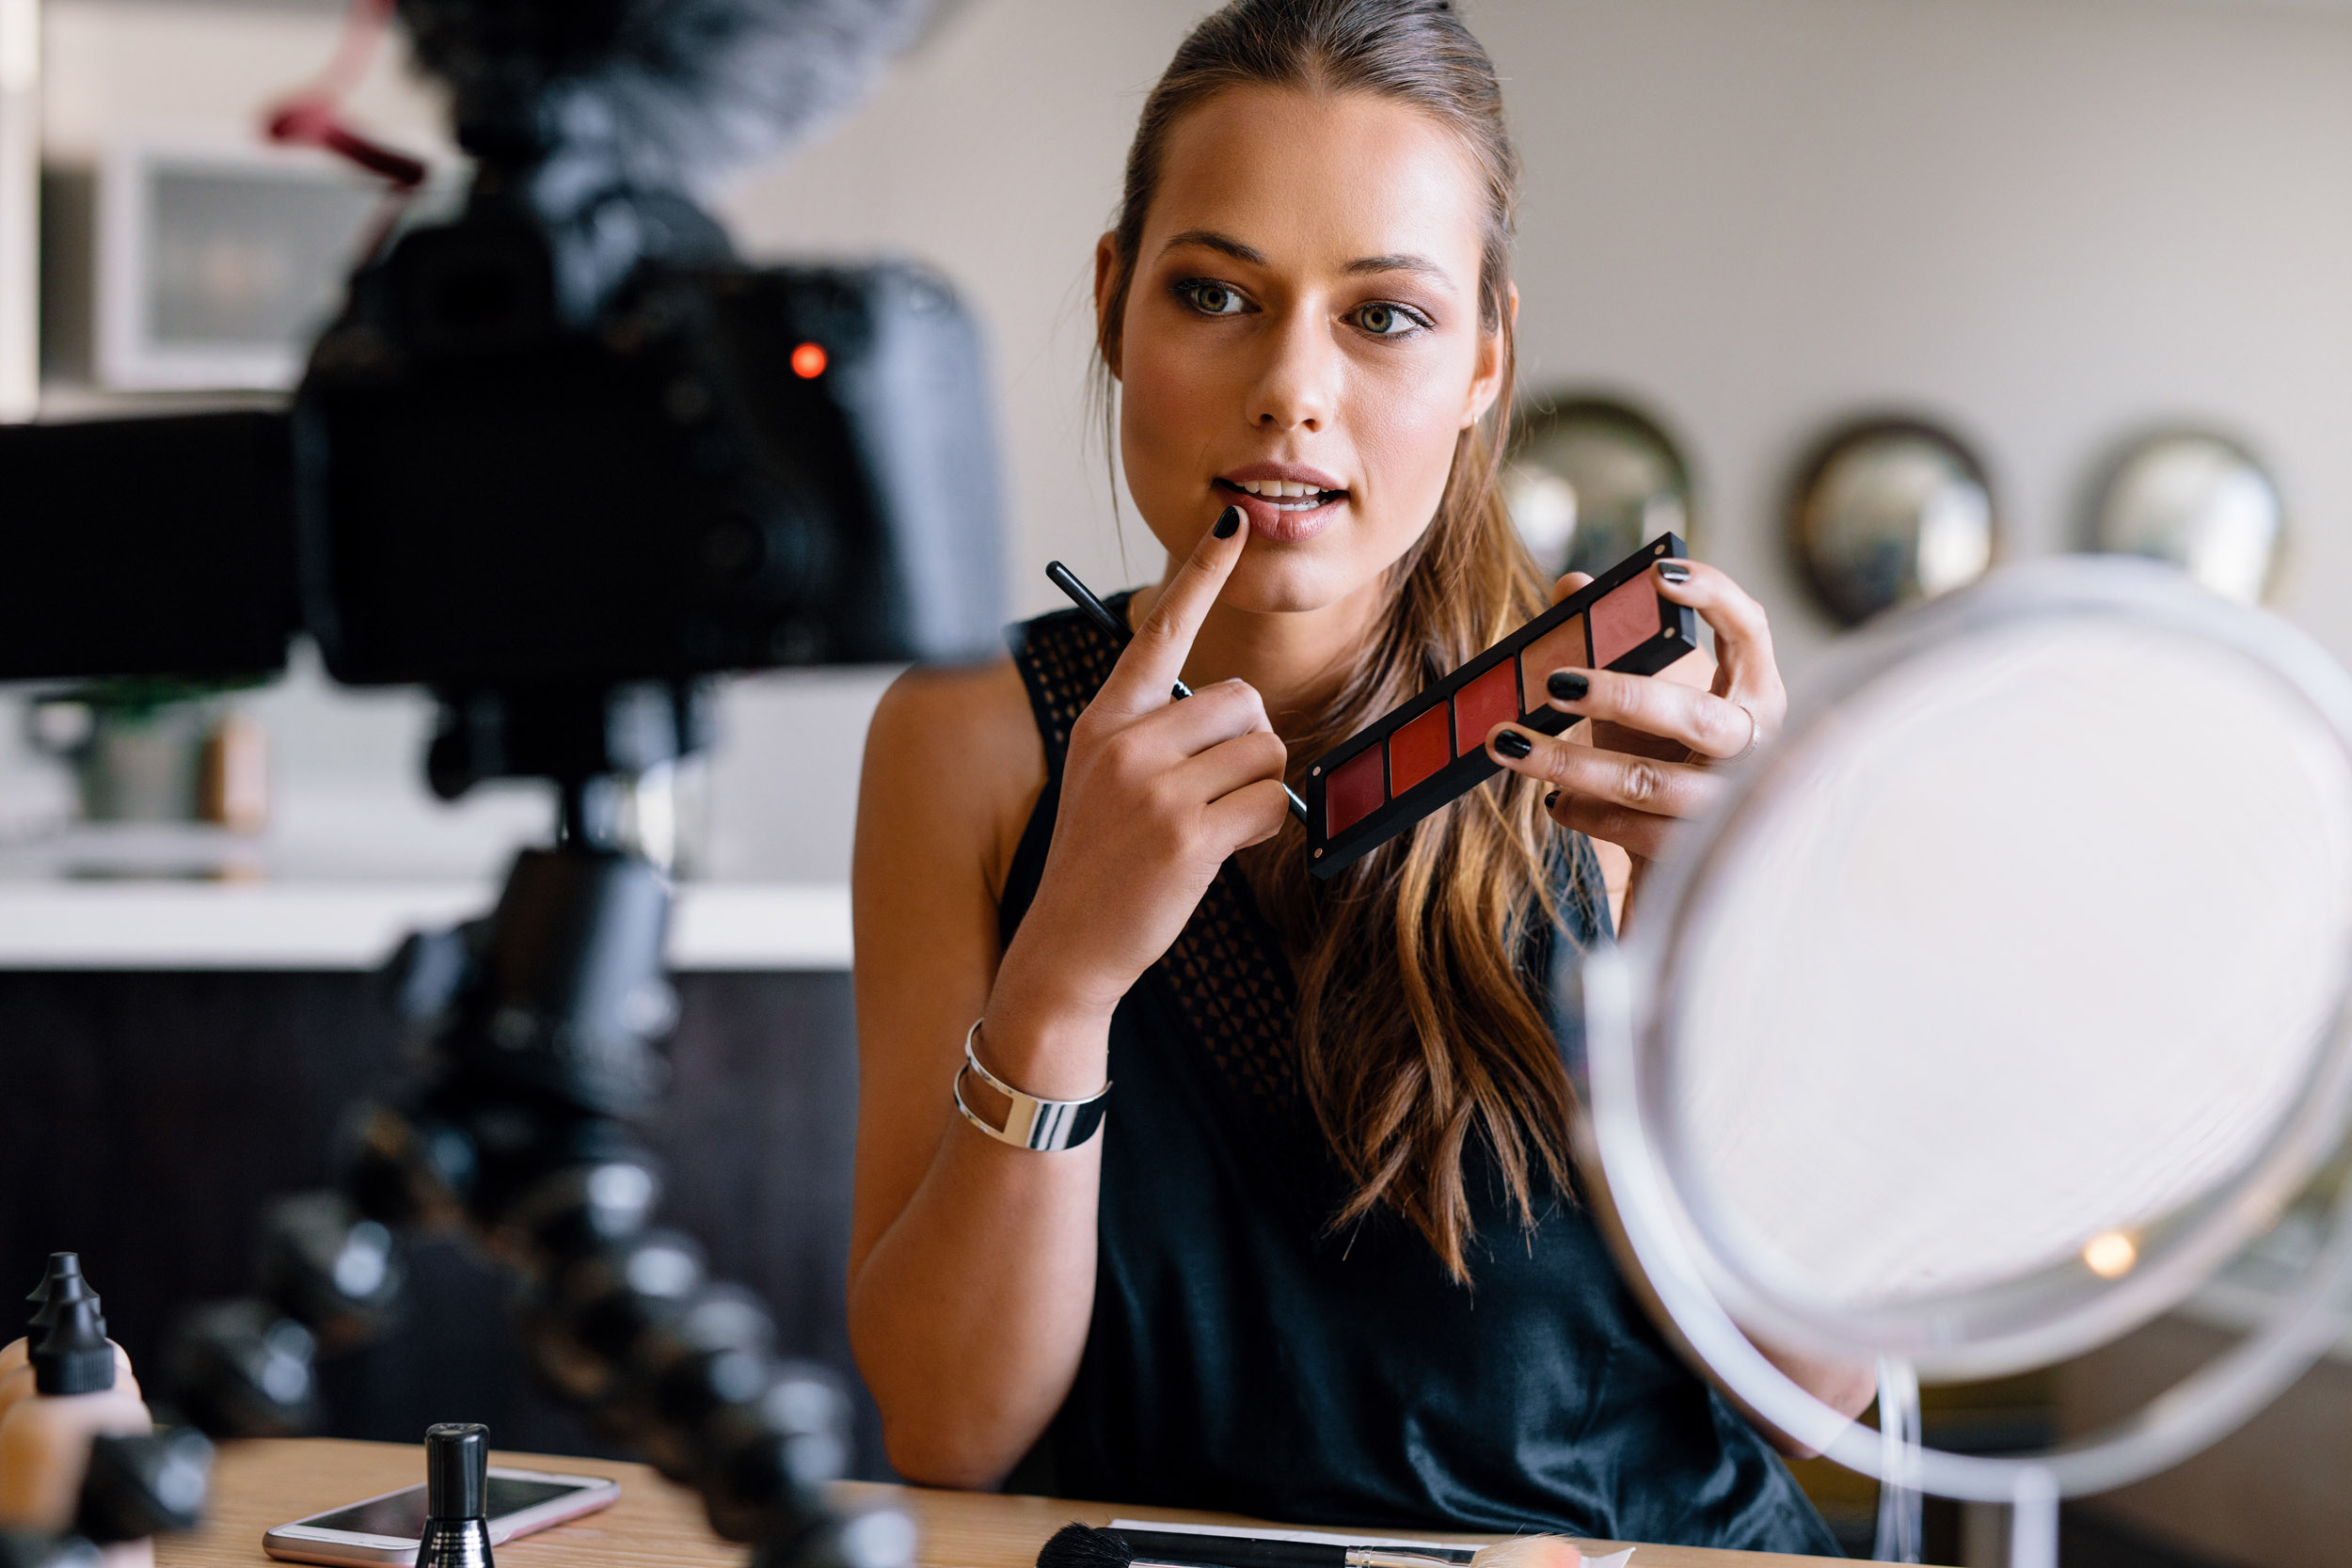 Young lady talking on cosmetics holding a makeup palette while recording her video. Woman making a video for her blog on cosmetics.